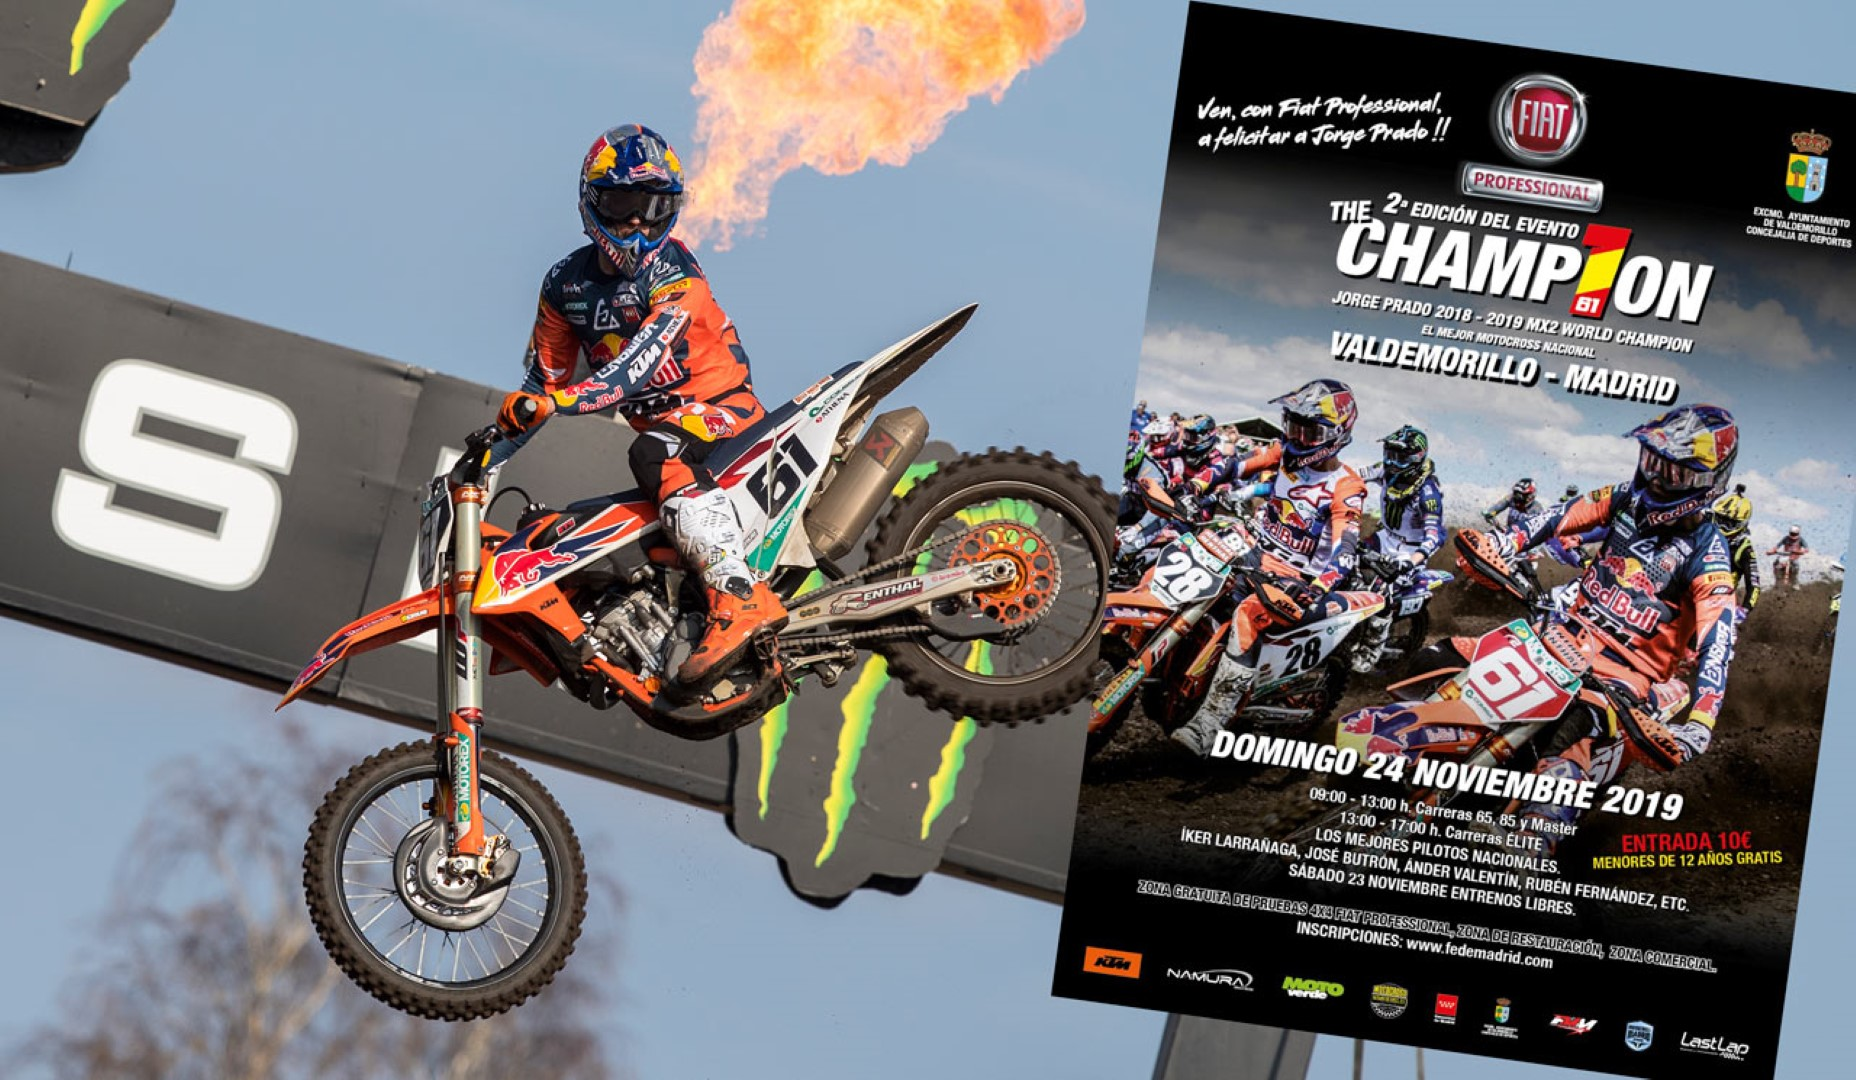 II Edición Fiat Professional The Champ1on: carrera homenaje a Jorge Prado